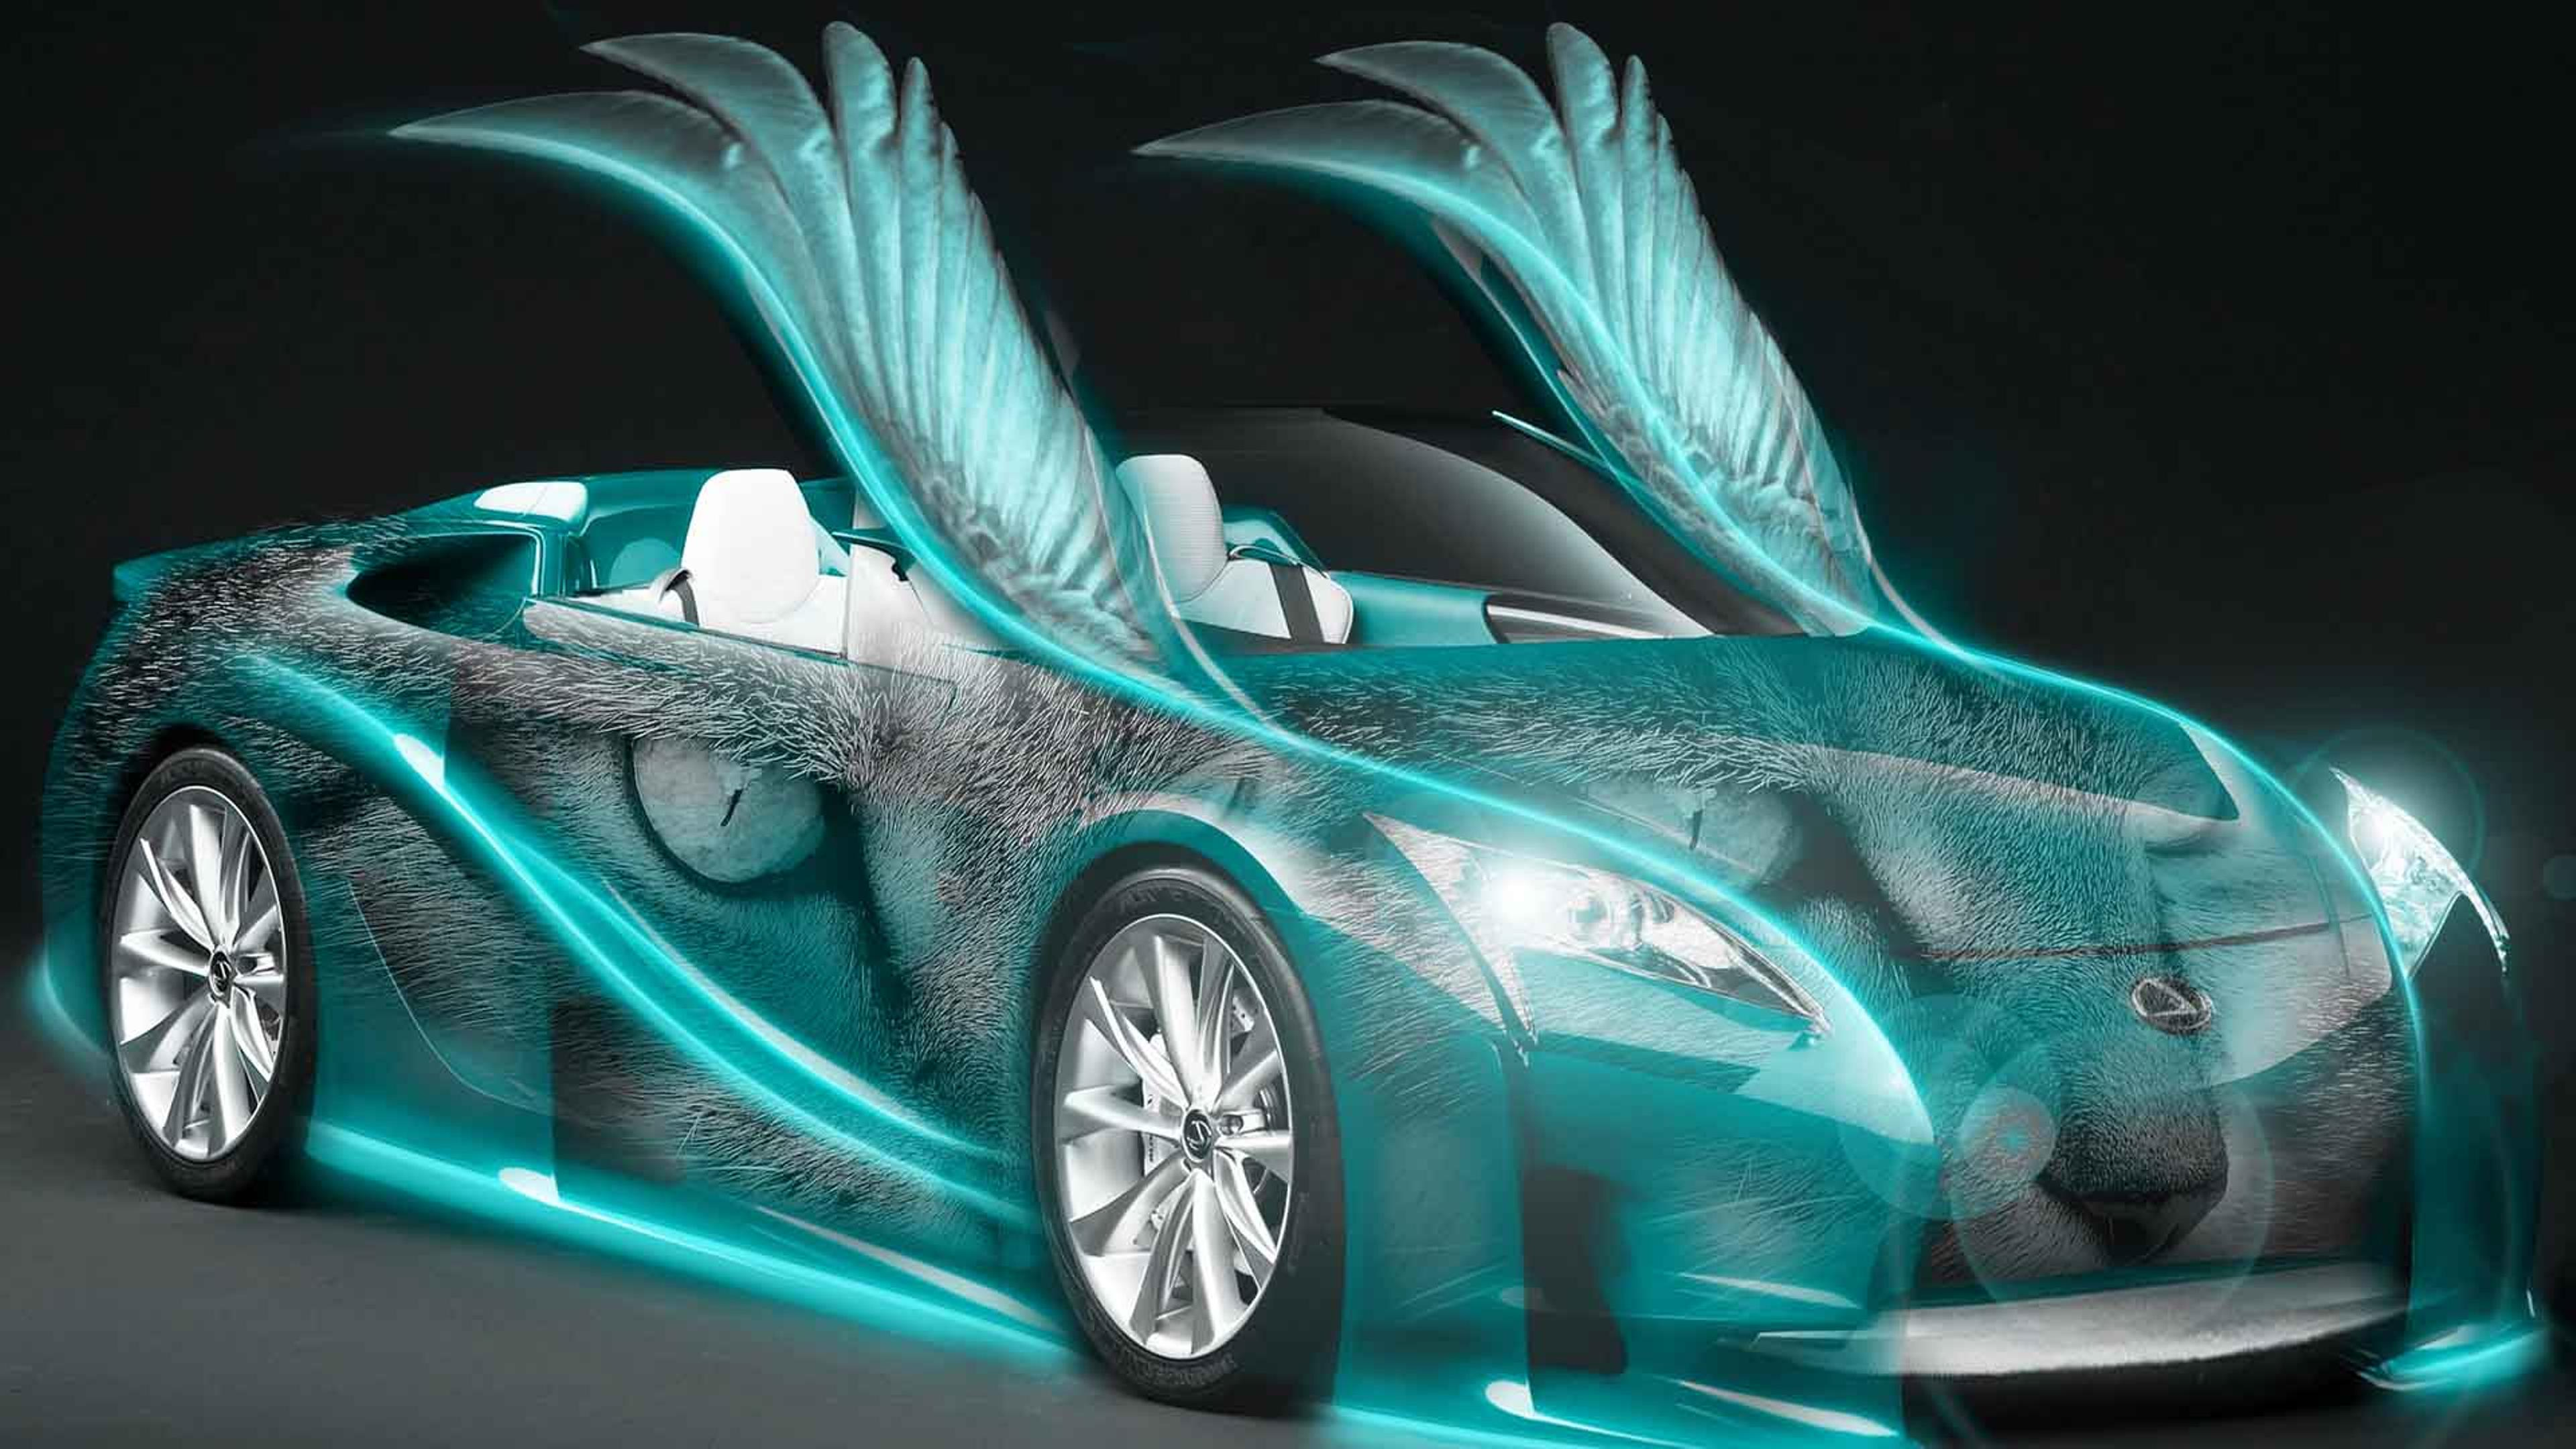 Blue Cool Car With Wings And Cat Eyes Wallpaper Download